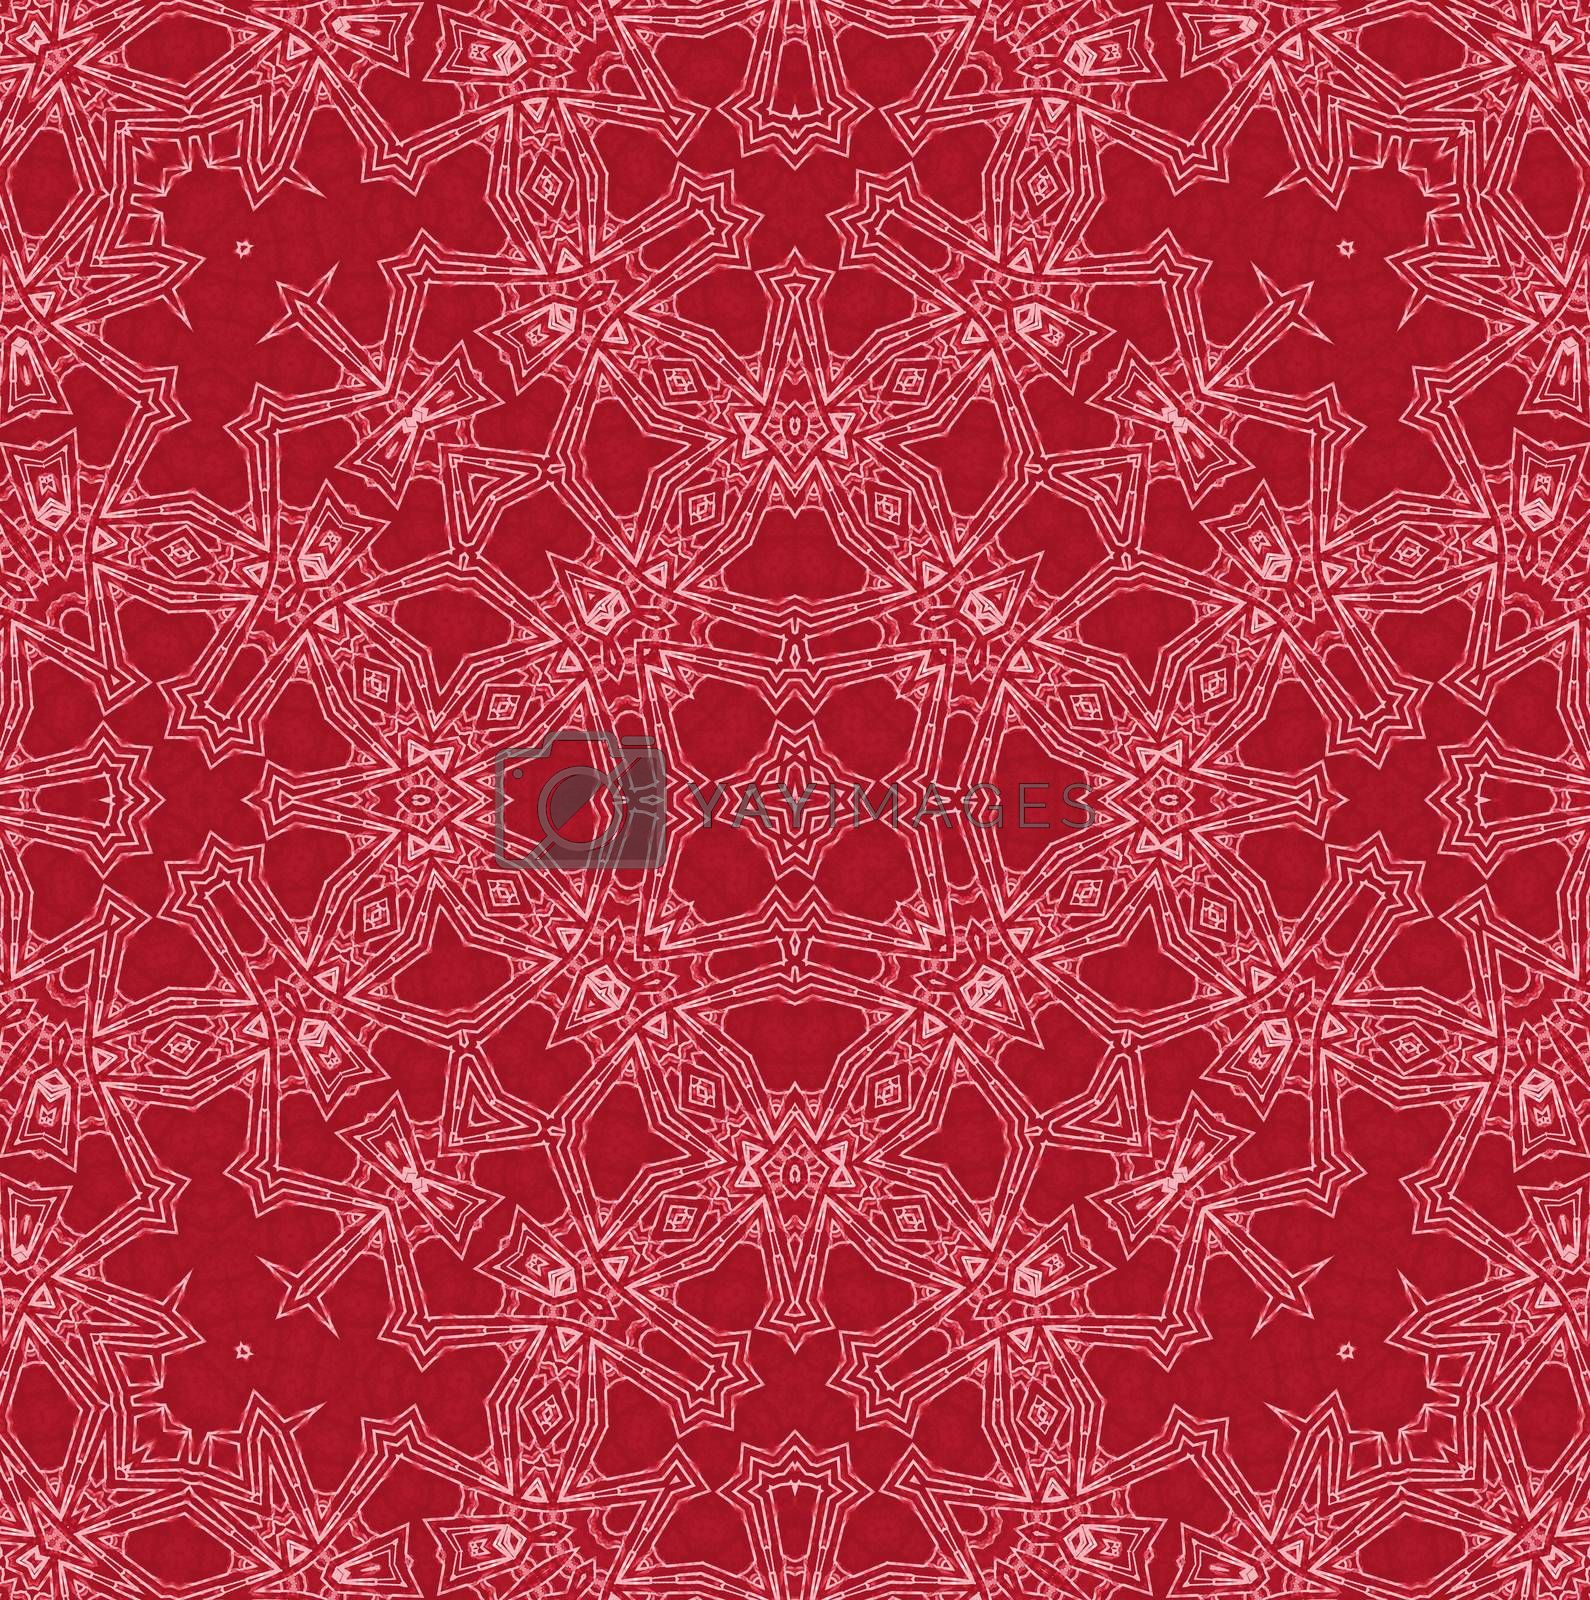 Abstract white pattern on red background